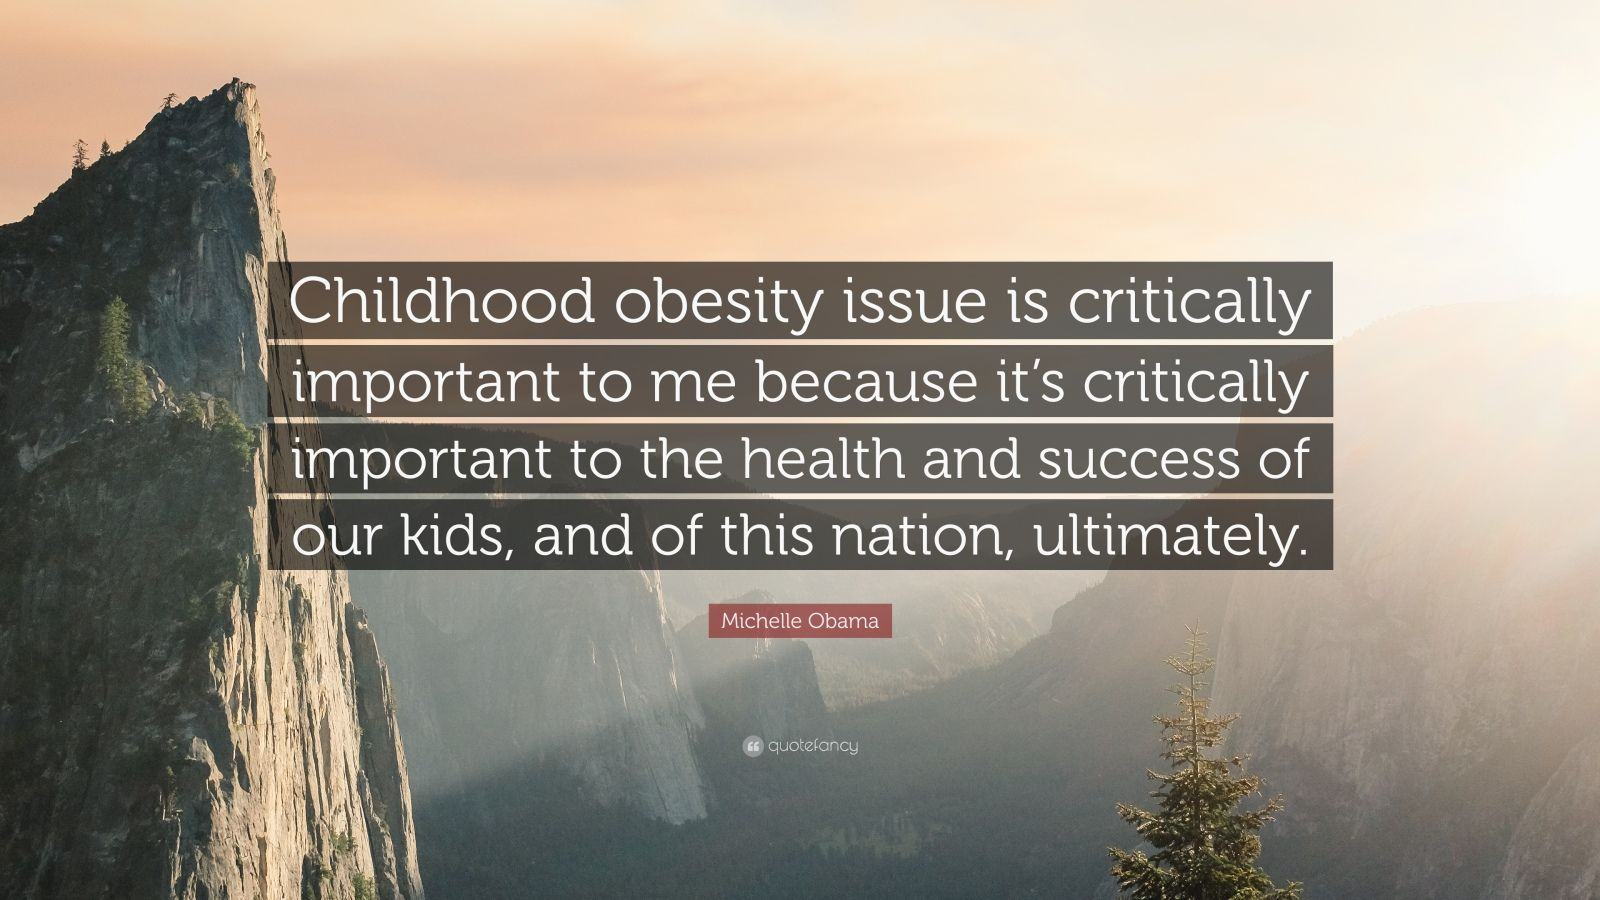 """Michelle Obama Quote: """"Childhood obesity issue is critically important to me because it's critically important to the health and success of our kids, and of this nation, ultimately."""""""